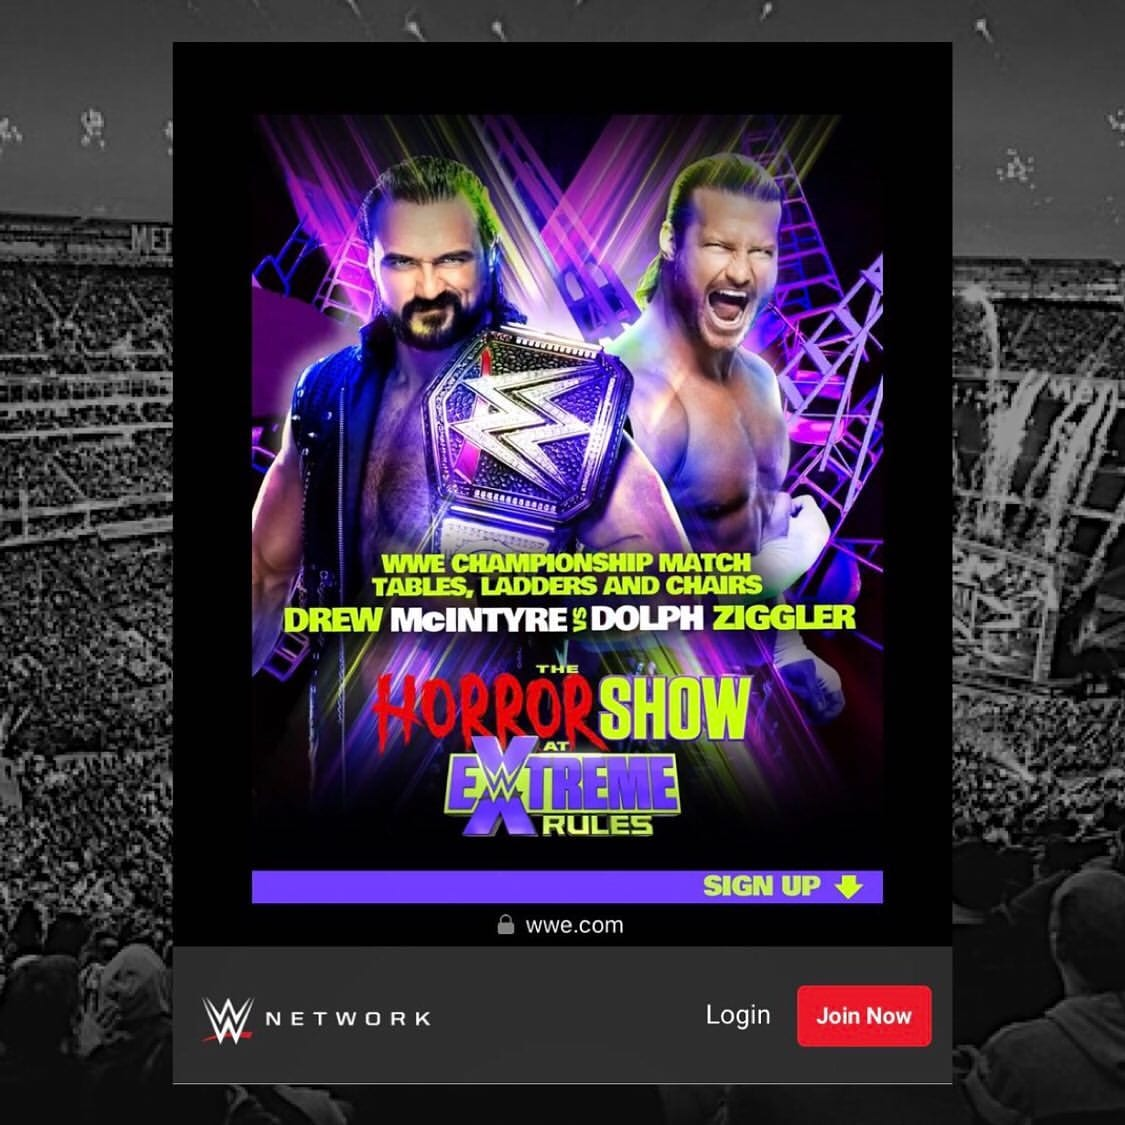 Drew McIntyre vs Dolph Ziggler TLC Match Advertisement For The Horror Show At WWE Extreme Rules 2020 Advertisement